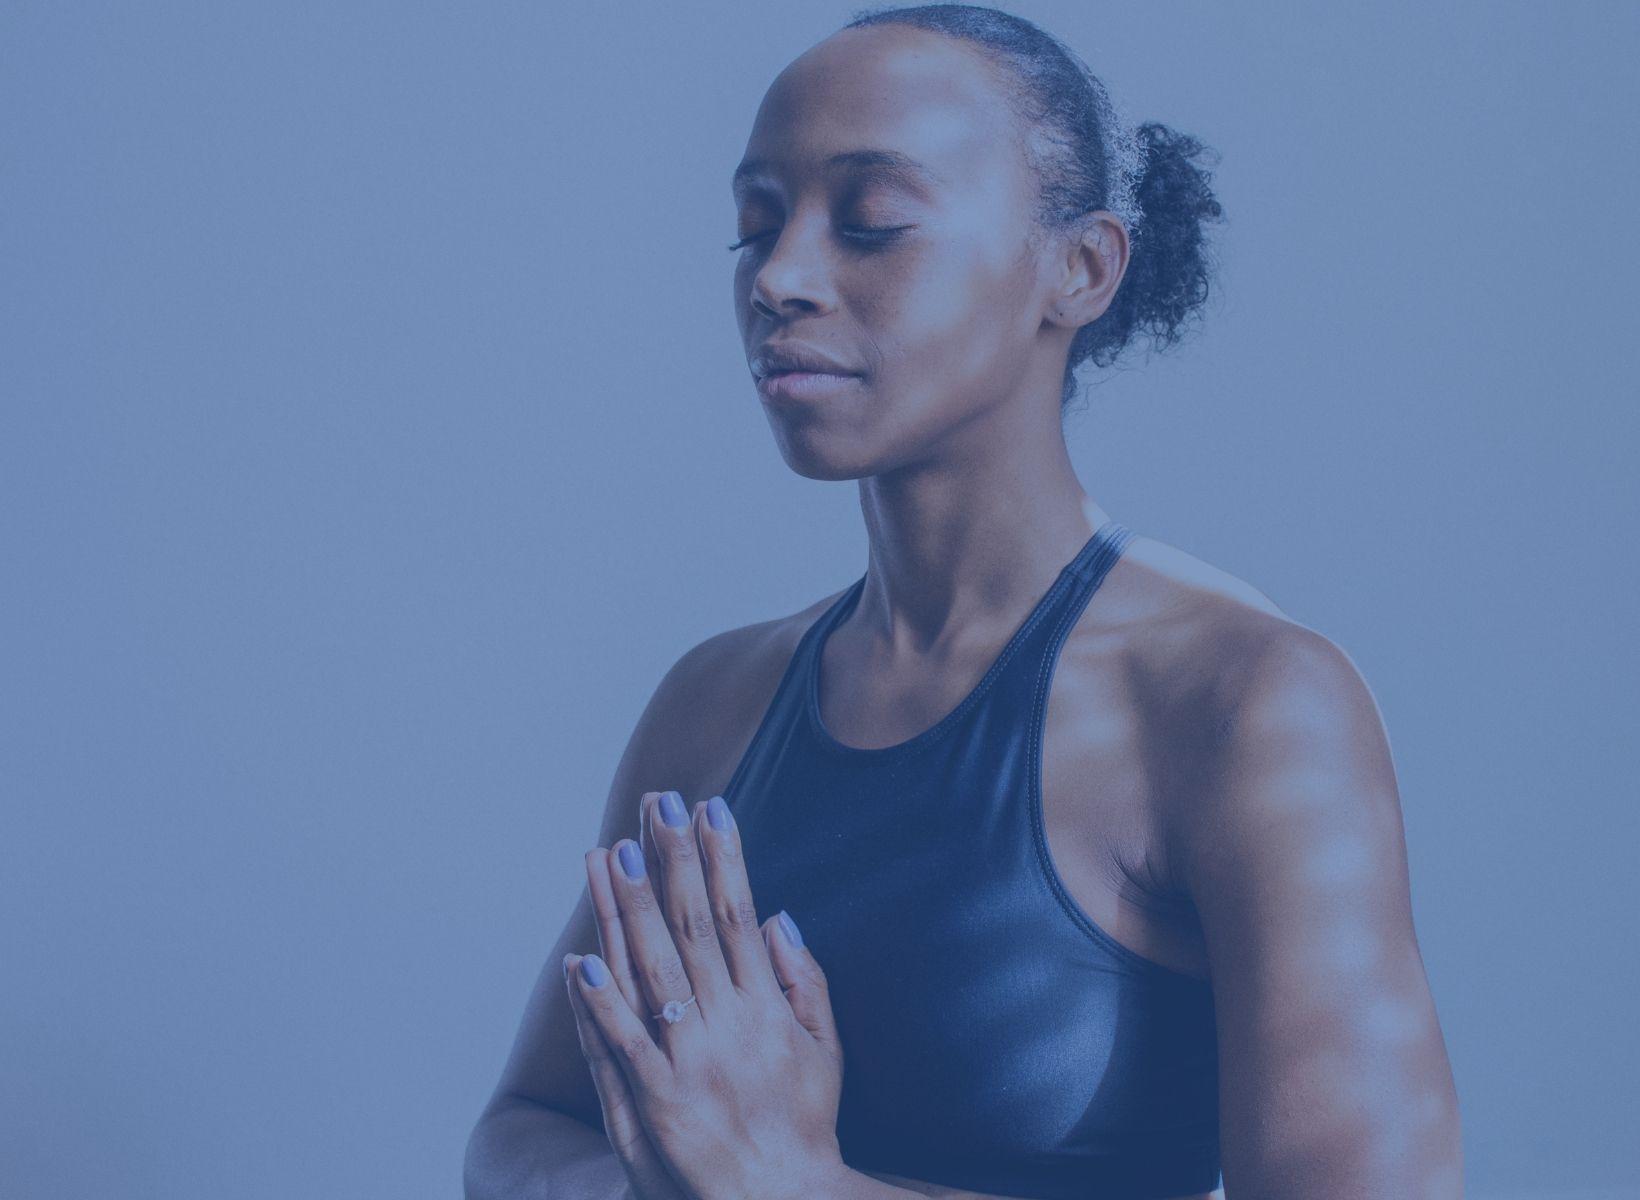 A black woman meditating with her eyes closed and her hands in prayer position in front of her chest